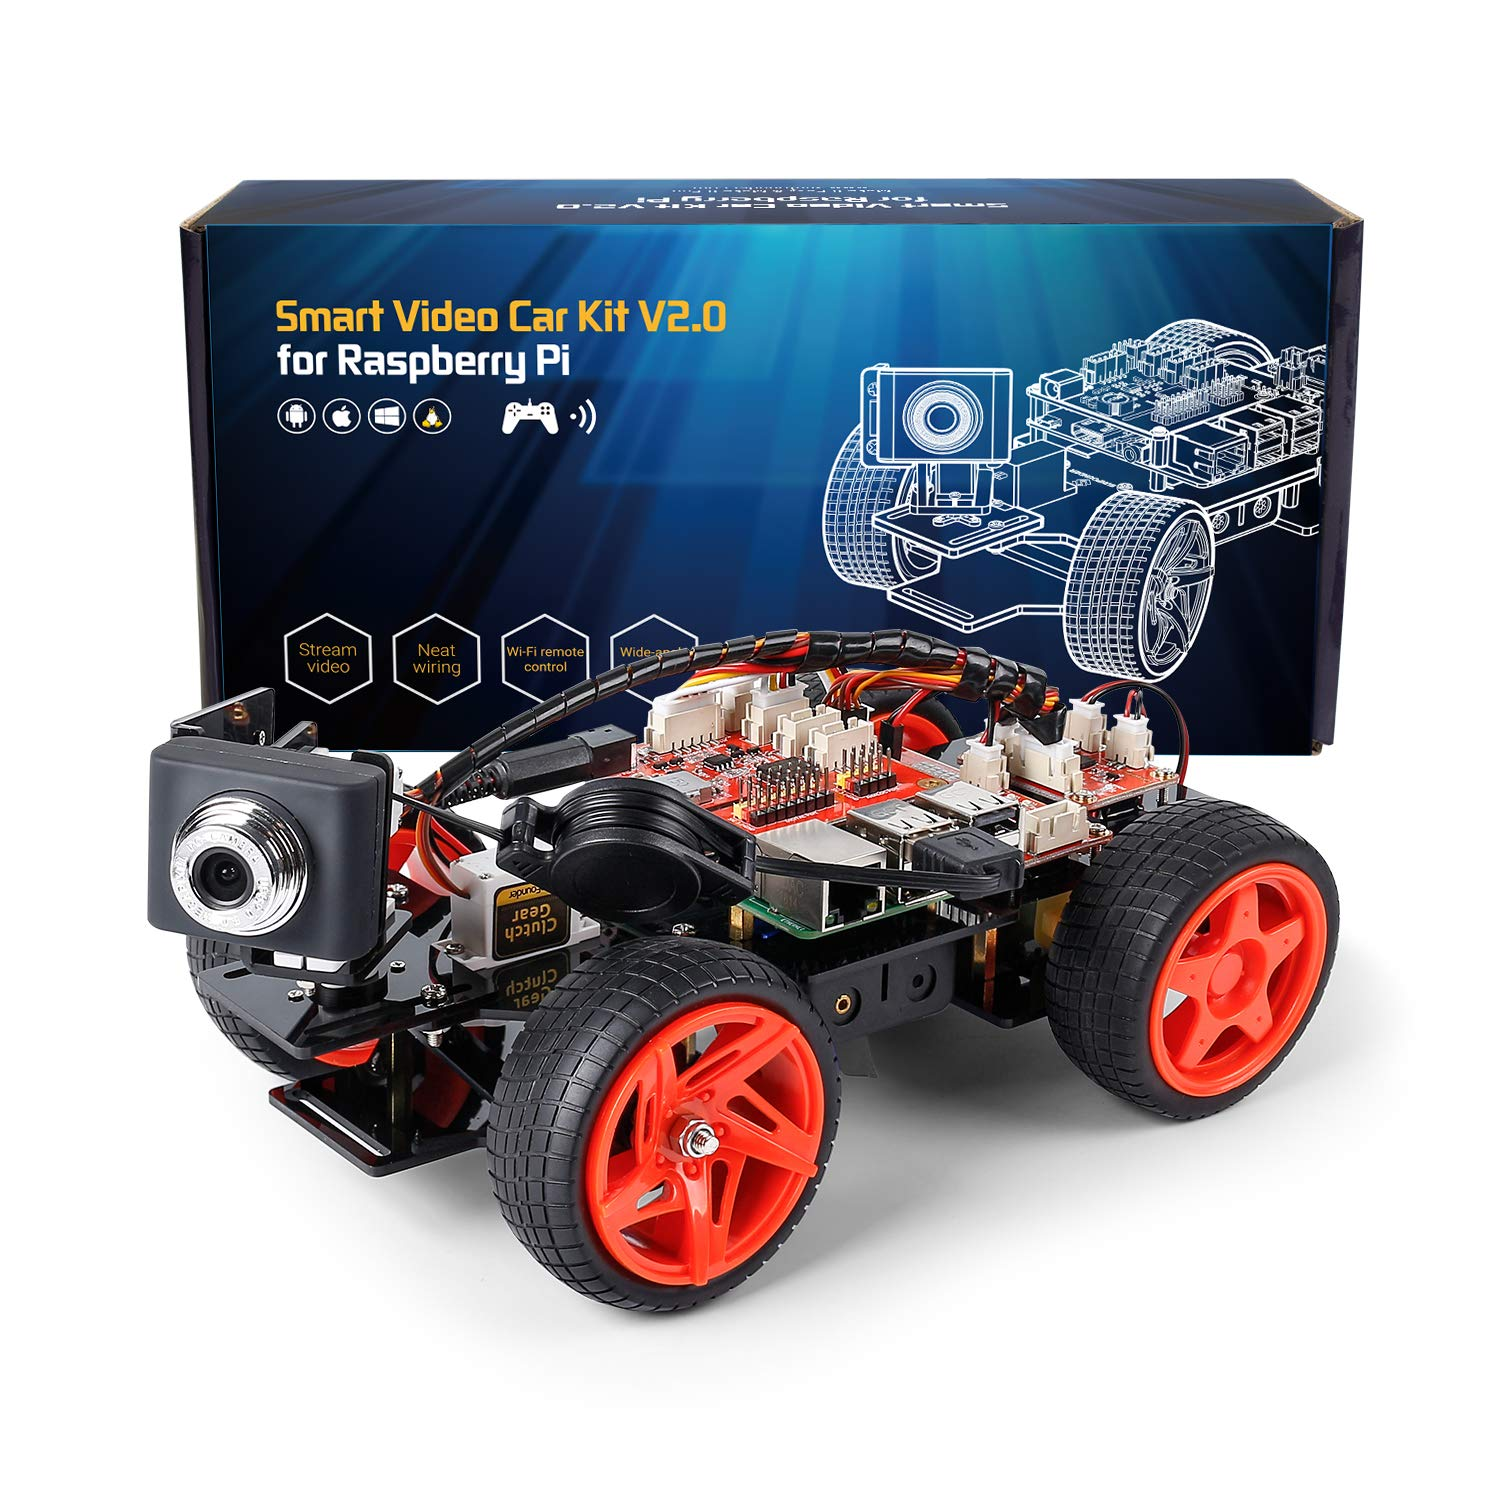 Sunfounder Smart Video Car Kit V20 For Raspberry Pi 3 Ultrasonic Remote Control Circuit Simple Schematic Diagram Model B 2b Graphical Visual Programming Language By Ui On Windows Mac